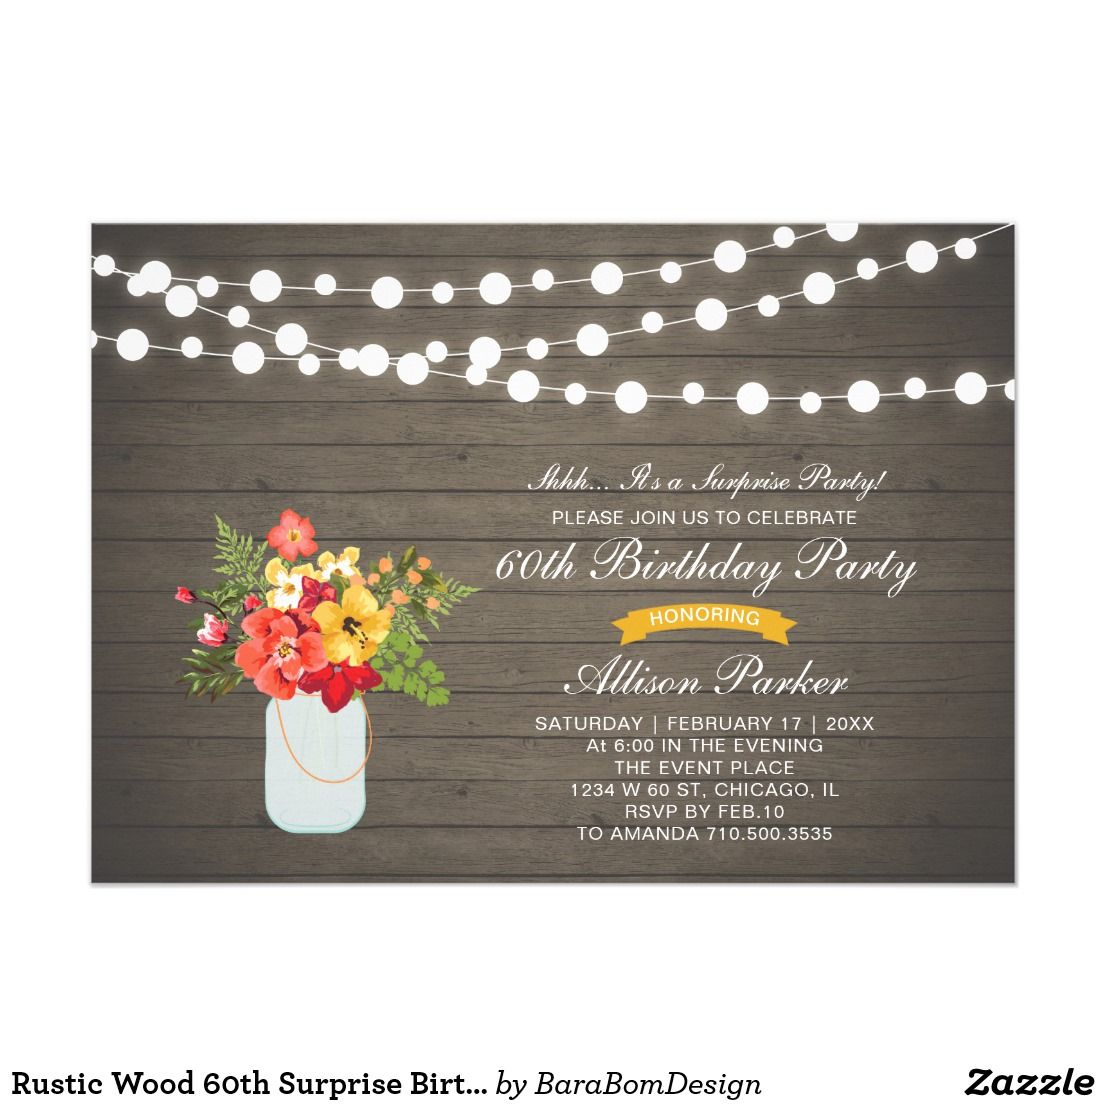 Rustic Wood 60th Surprise Birthday Party Invitation | Party ...